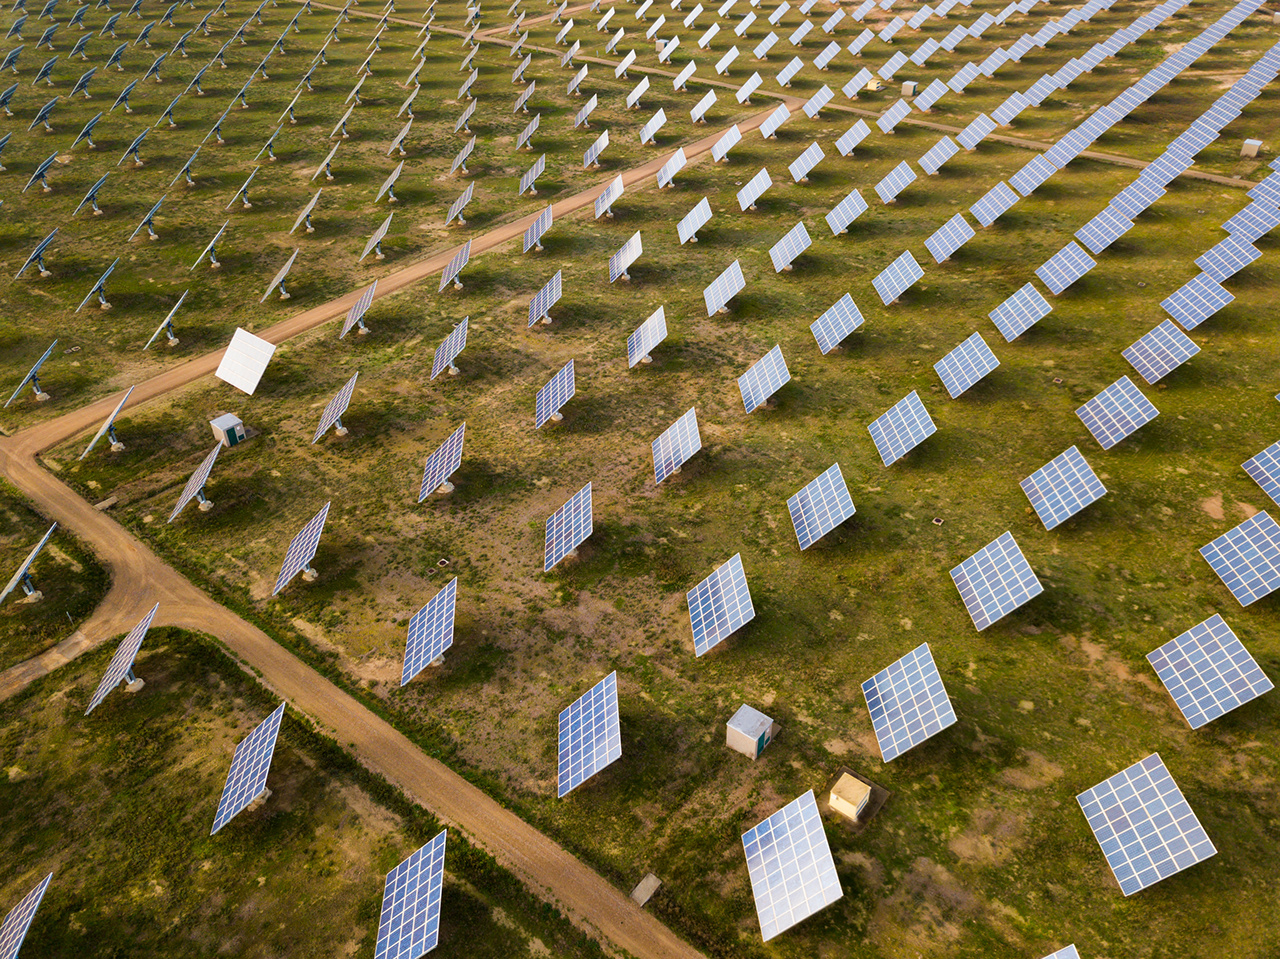 Aerial view of solar panels of modern photovoltaic power station